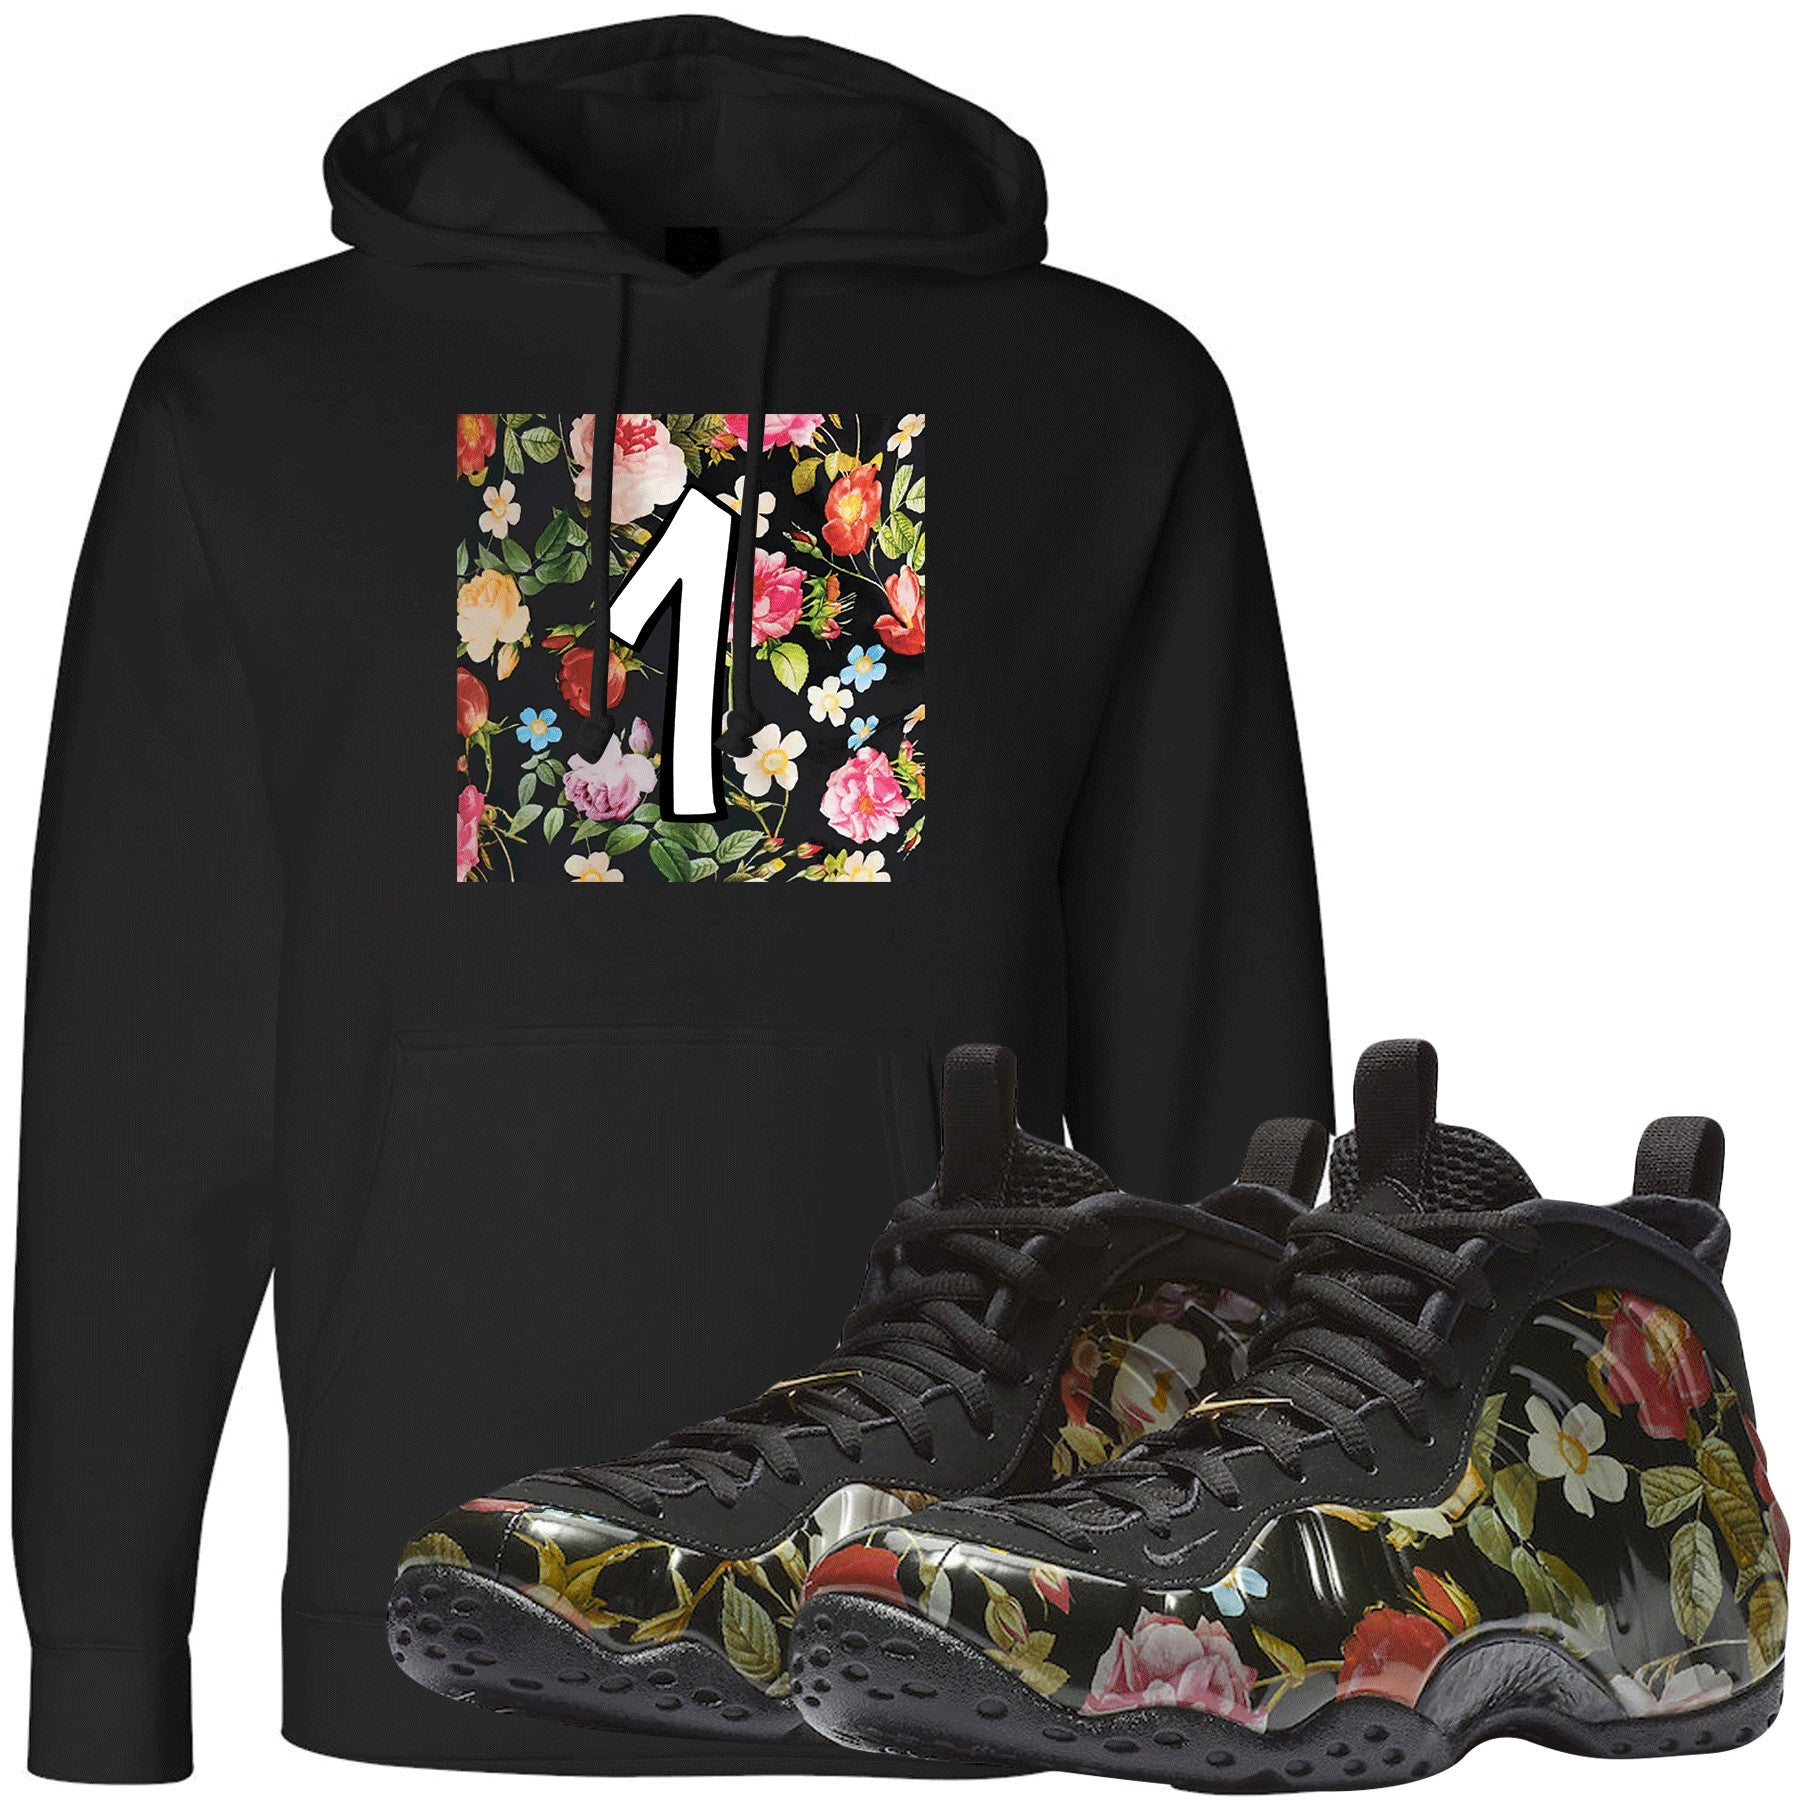 abd06a4147e2f Wear this sneaker matching hoodie to match your Air Foamposite One Floral  sneakers. Match your